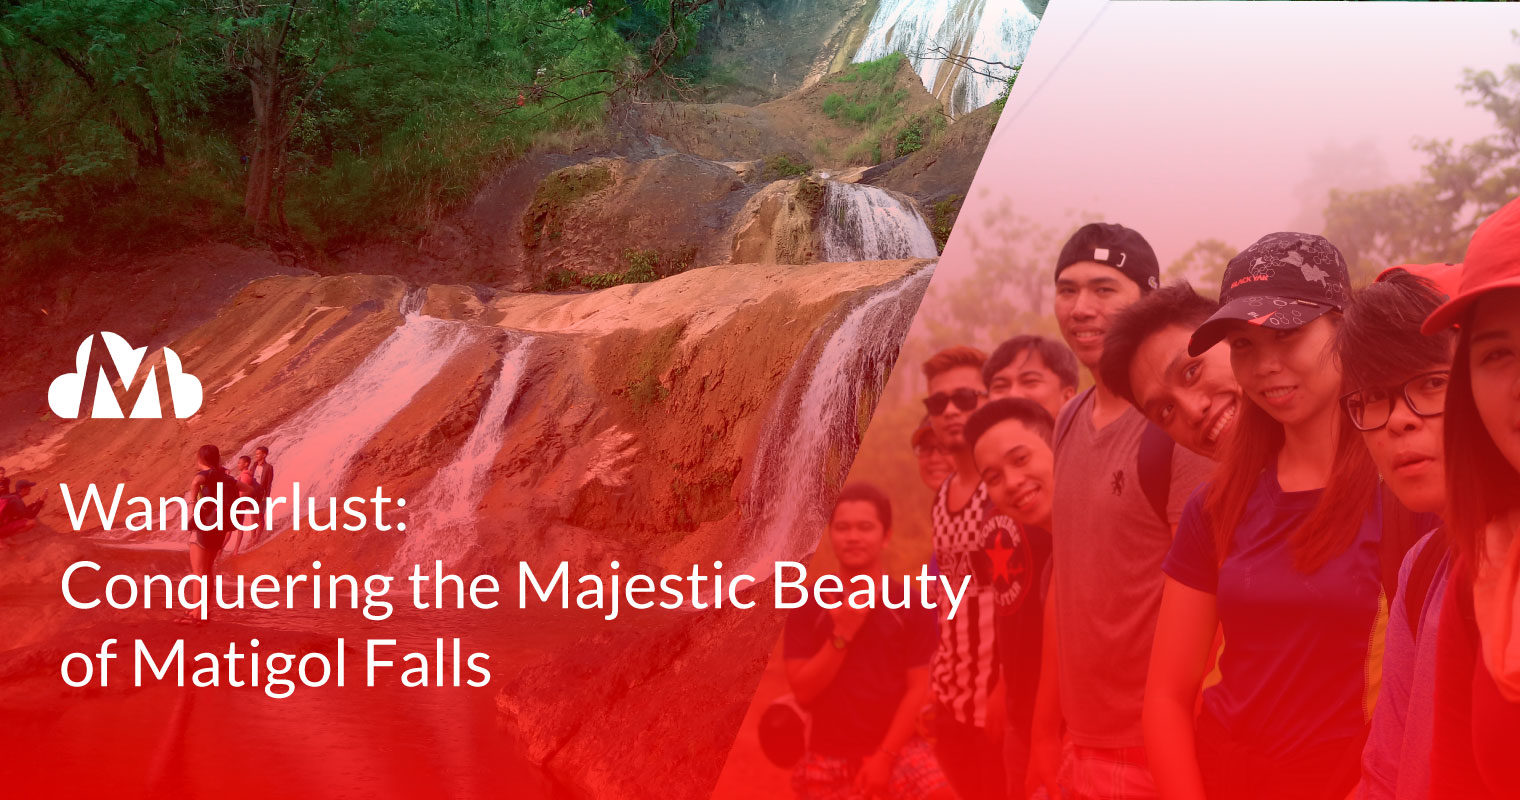 Wanderlust: Conquering the Majestic Beauty of Matigol Falls